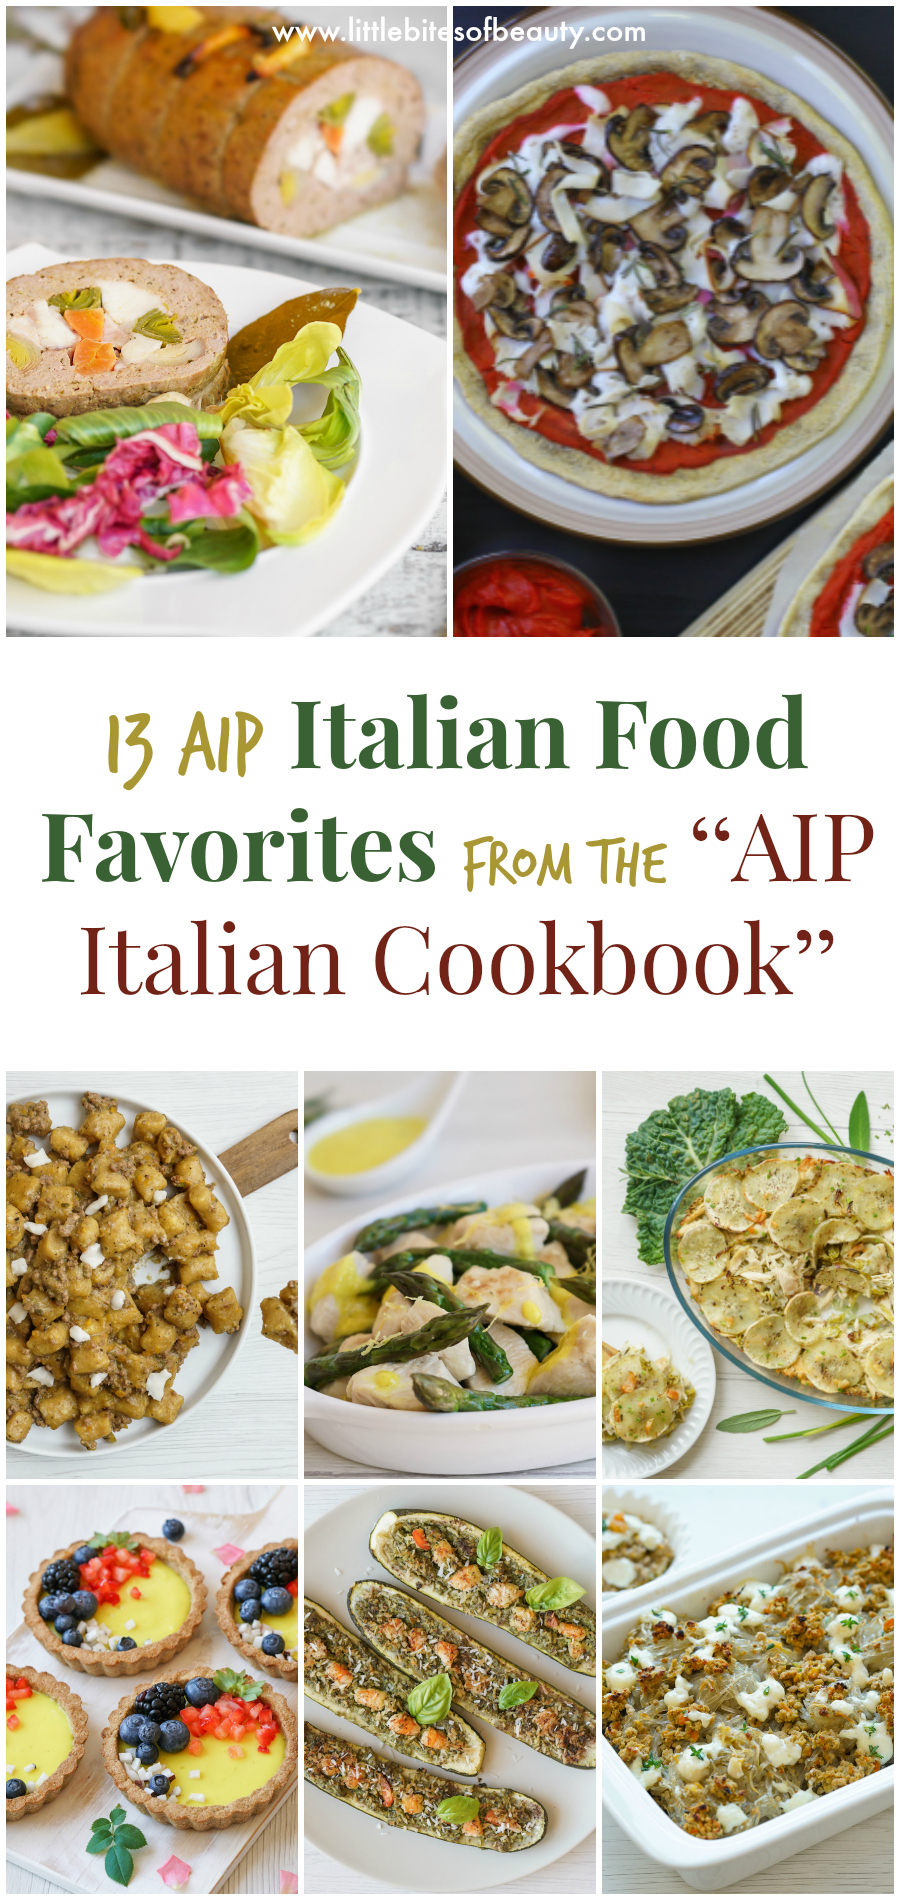 "Top 13 AIP Italian Food Recipes from the ""AIP Italian Cookbook"""